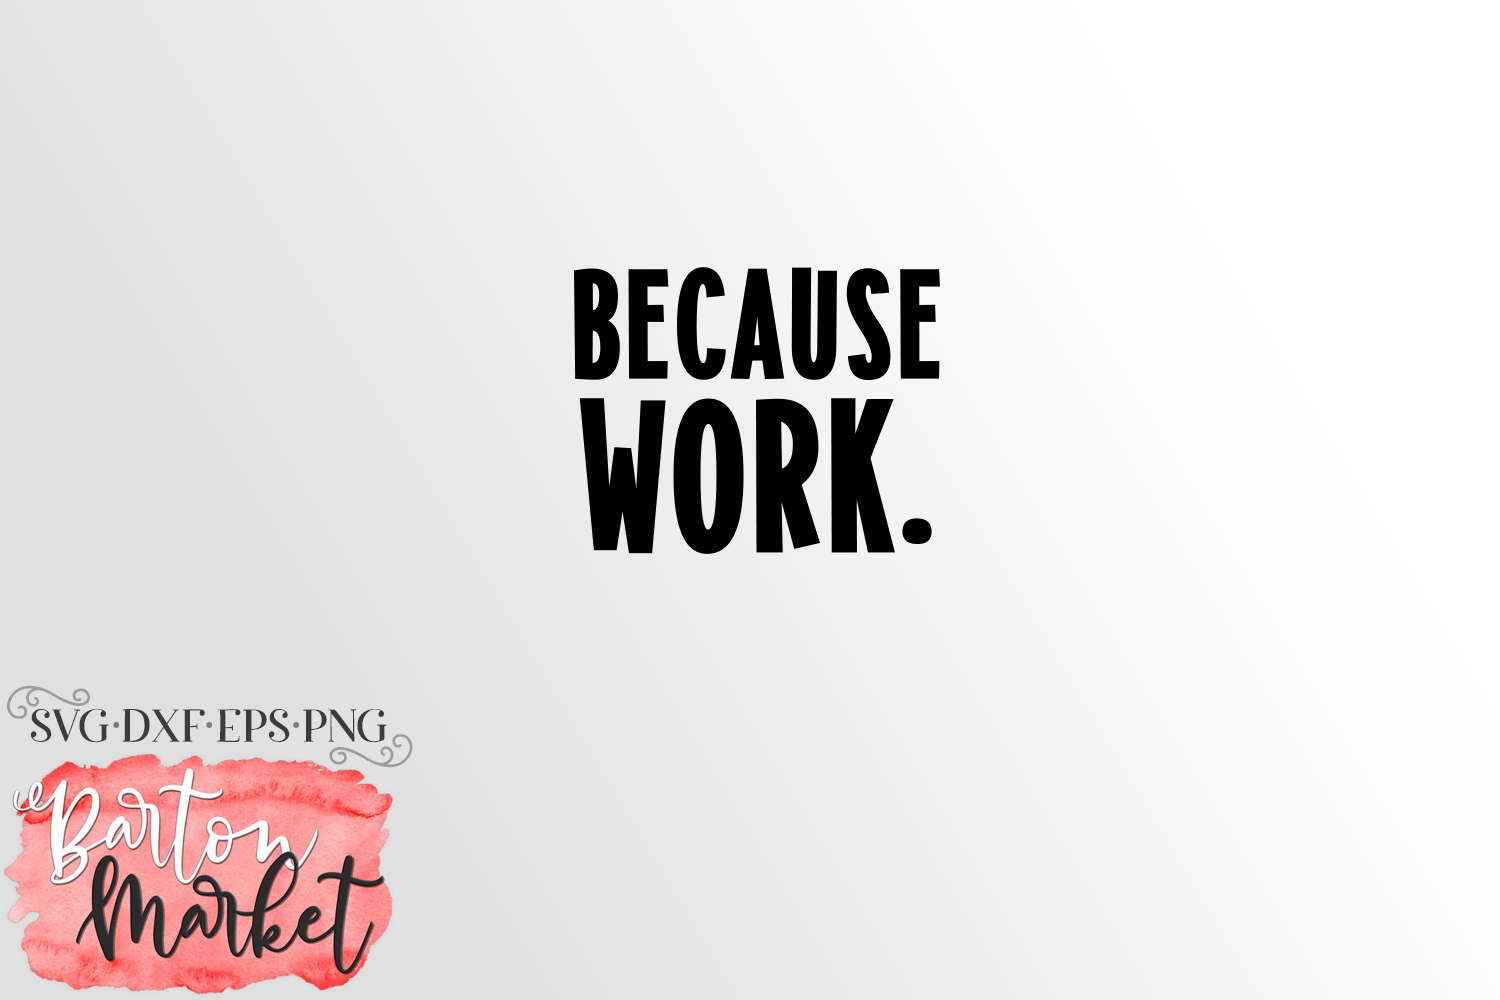 Because Work SVG DXF EPS PNG example image 4